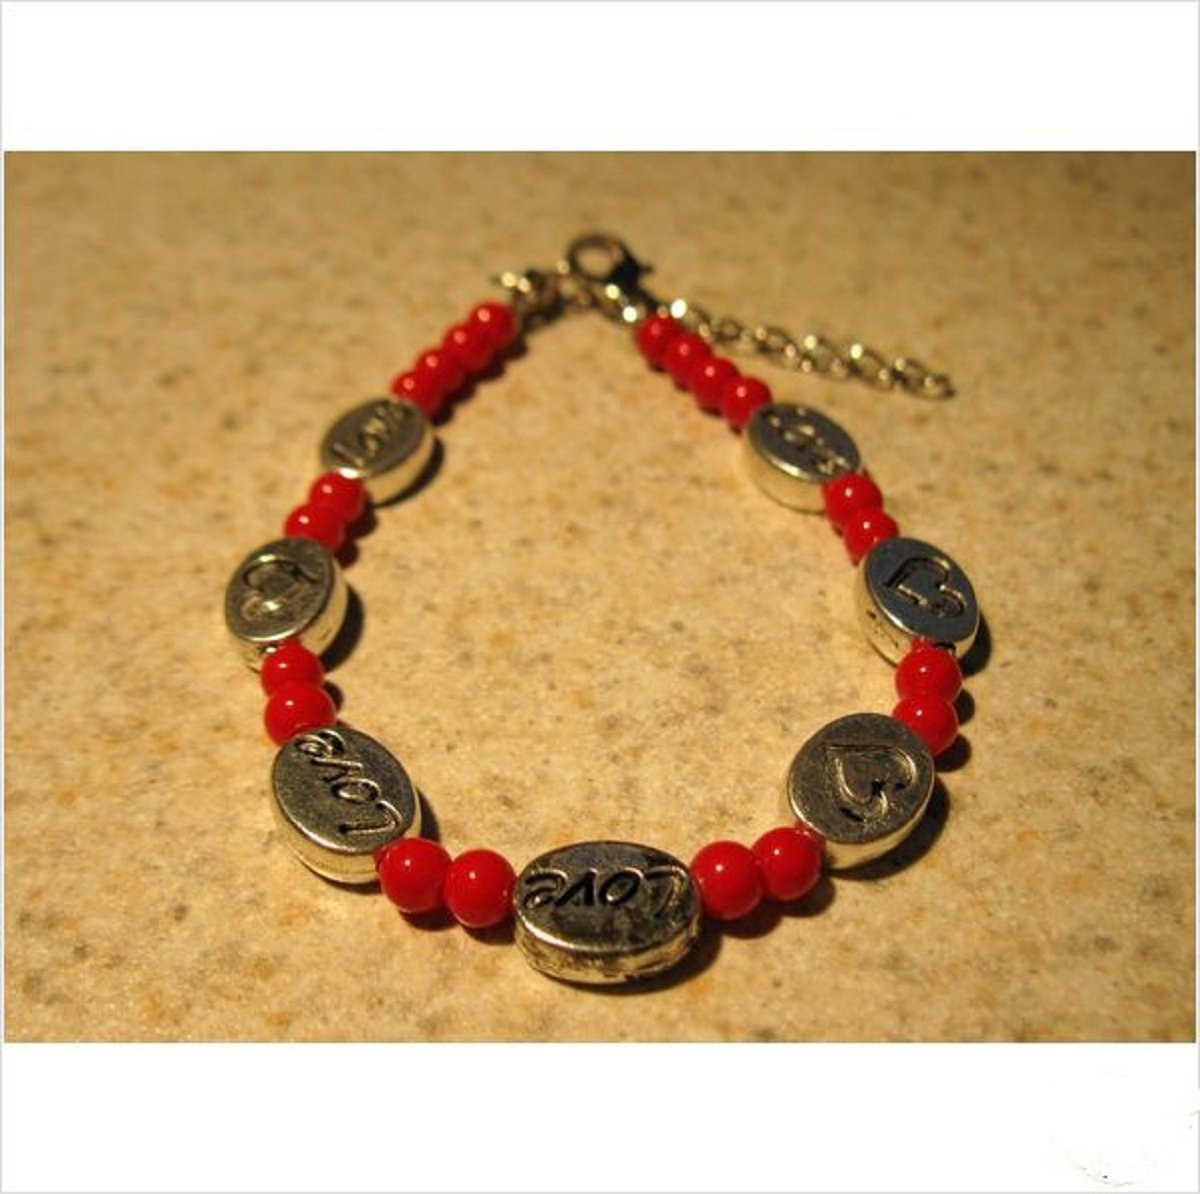 Bracelet Red Coral and Silver Love Beads #593